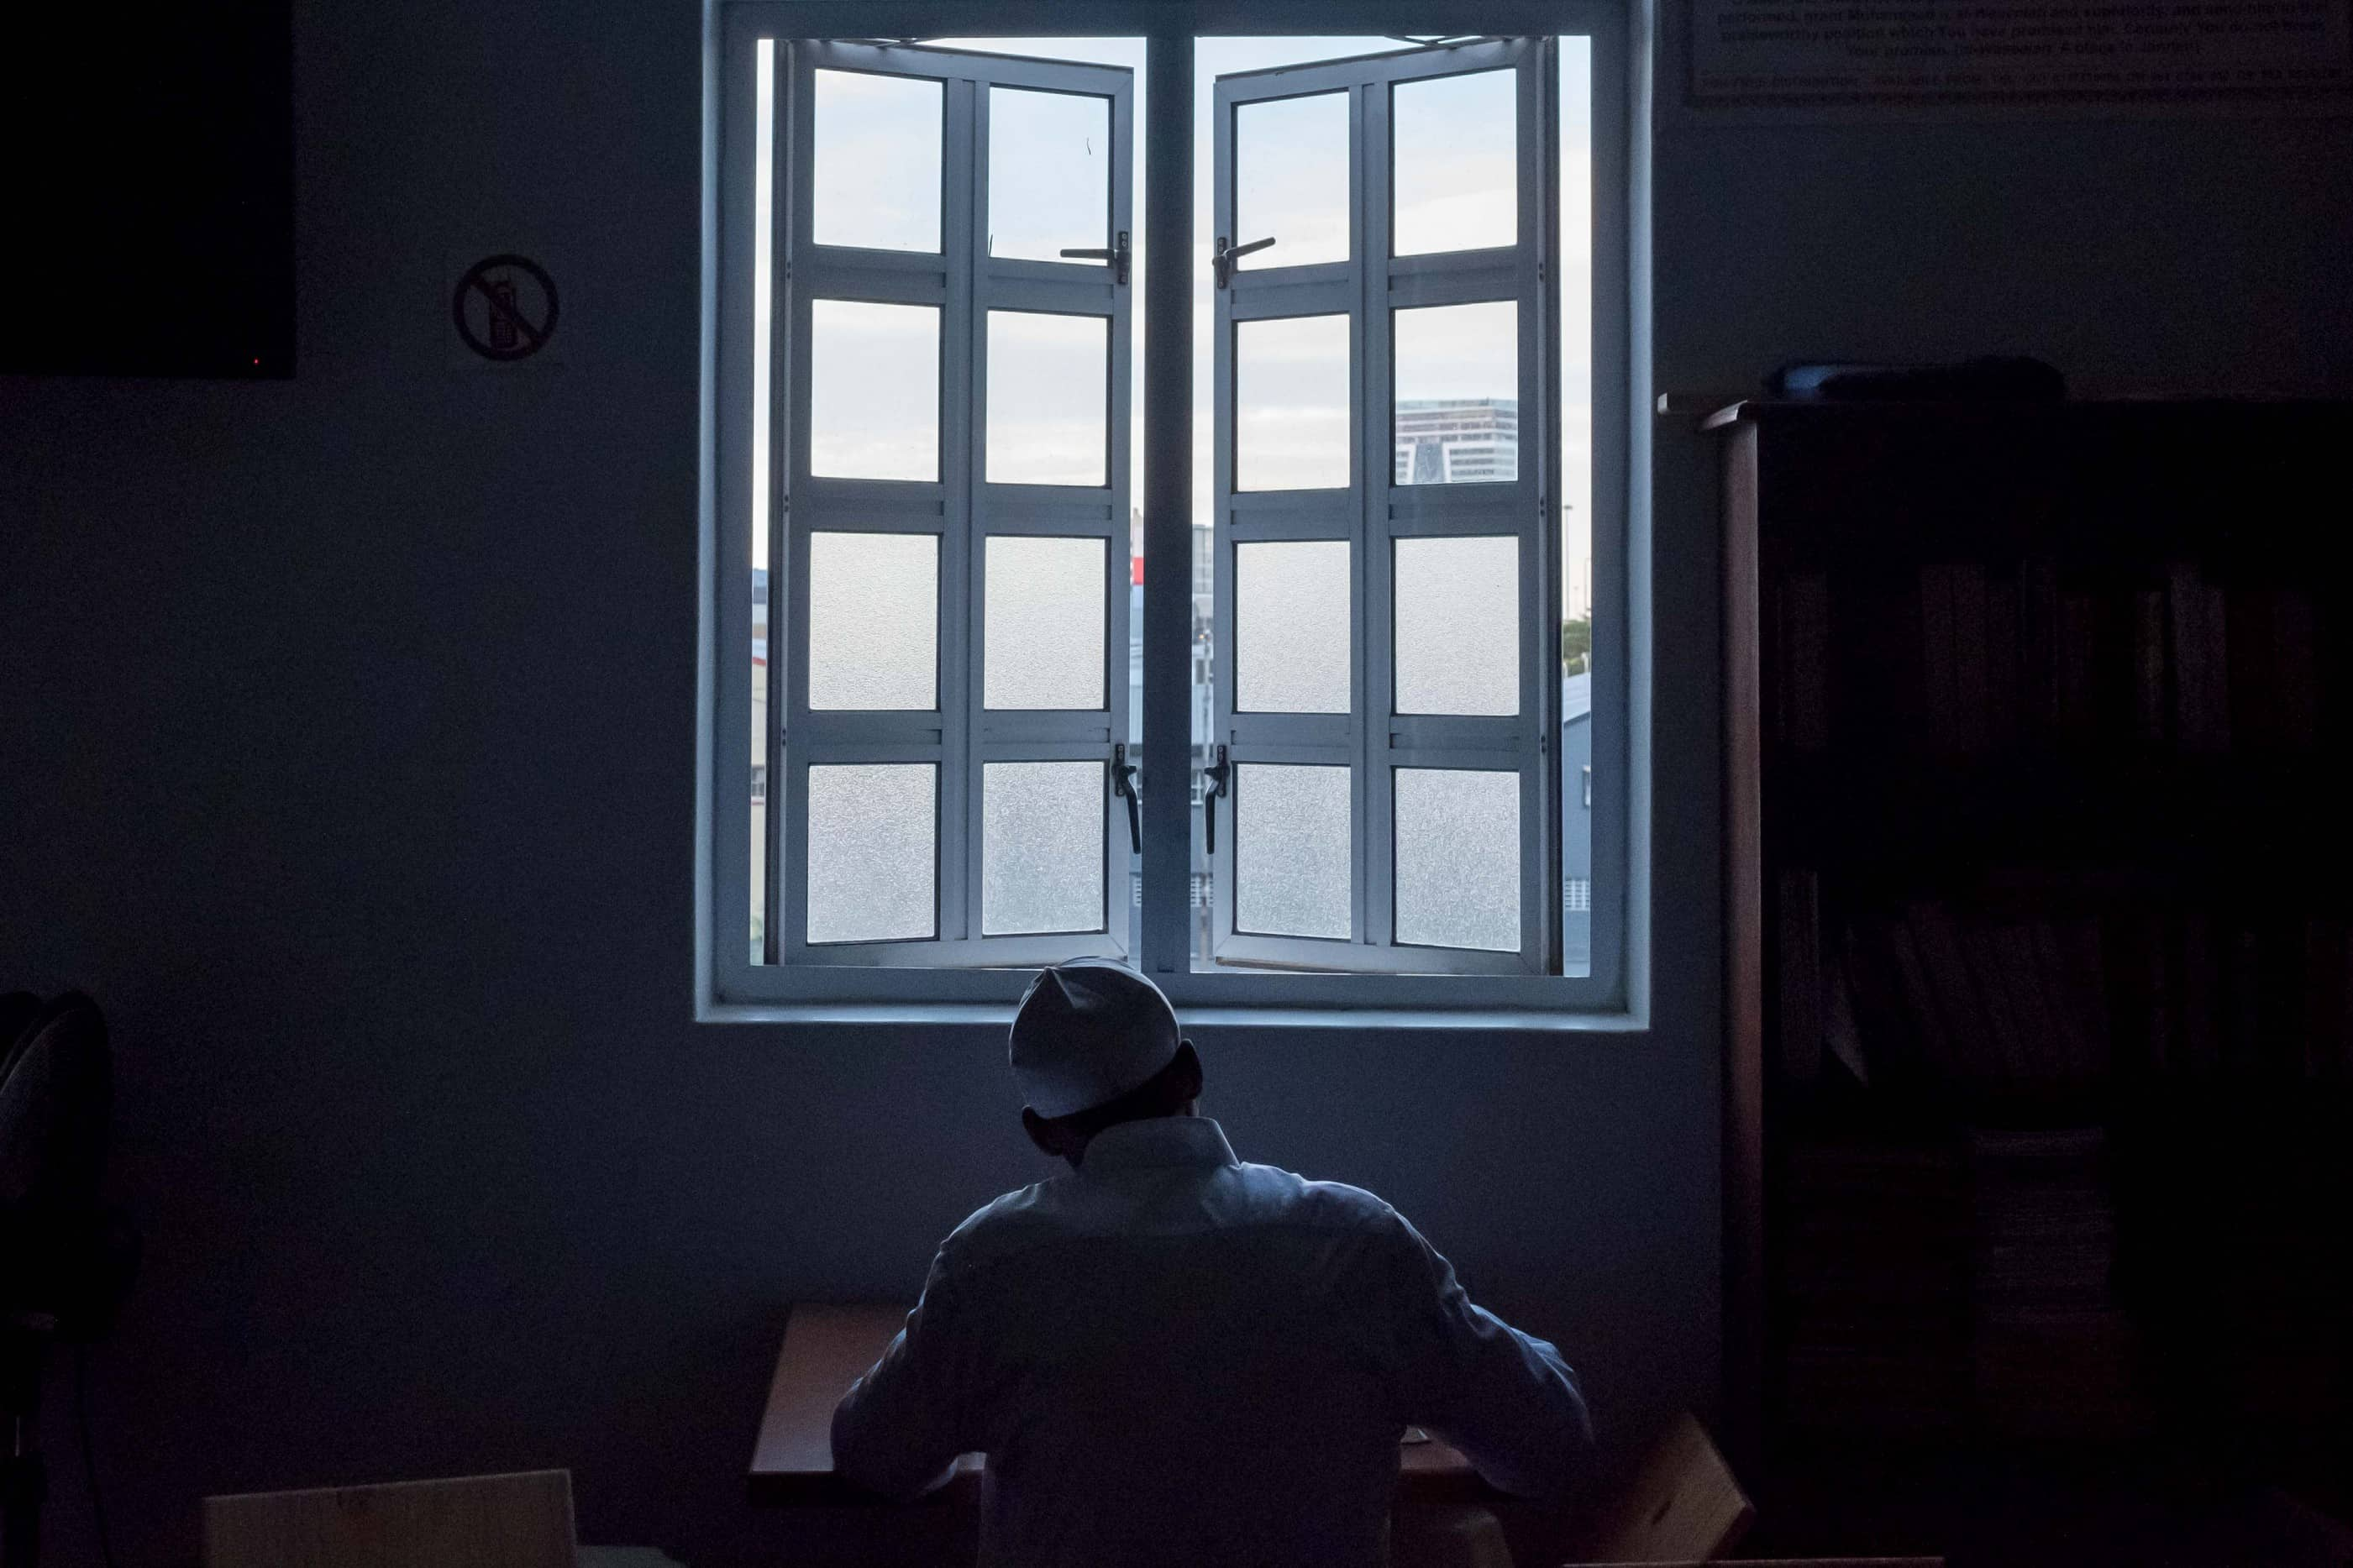 18 May 2019: A man reading the Quran at the mosque.